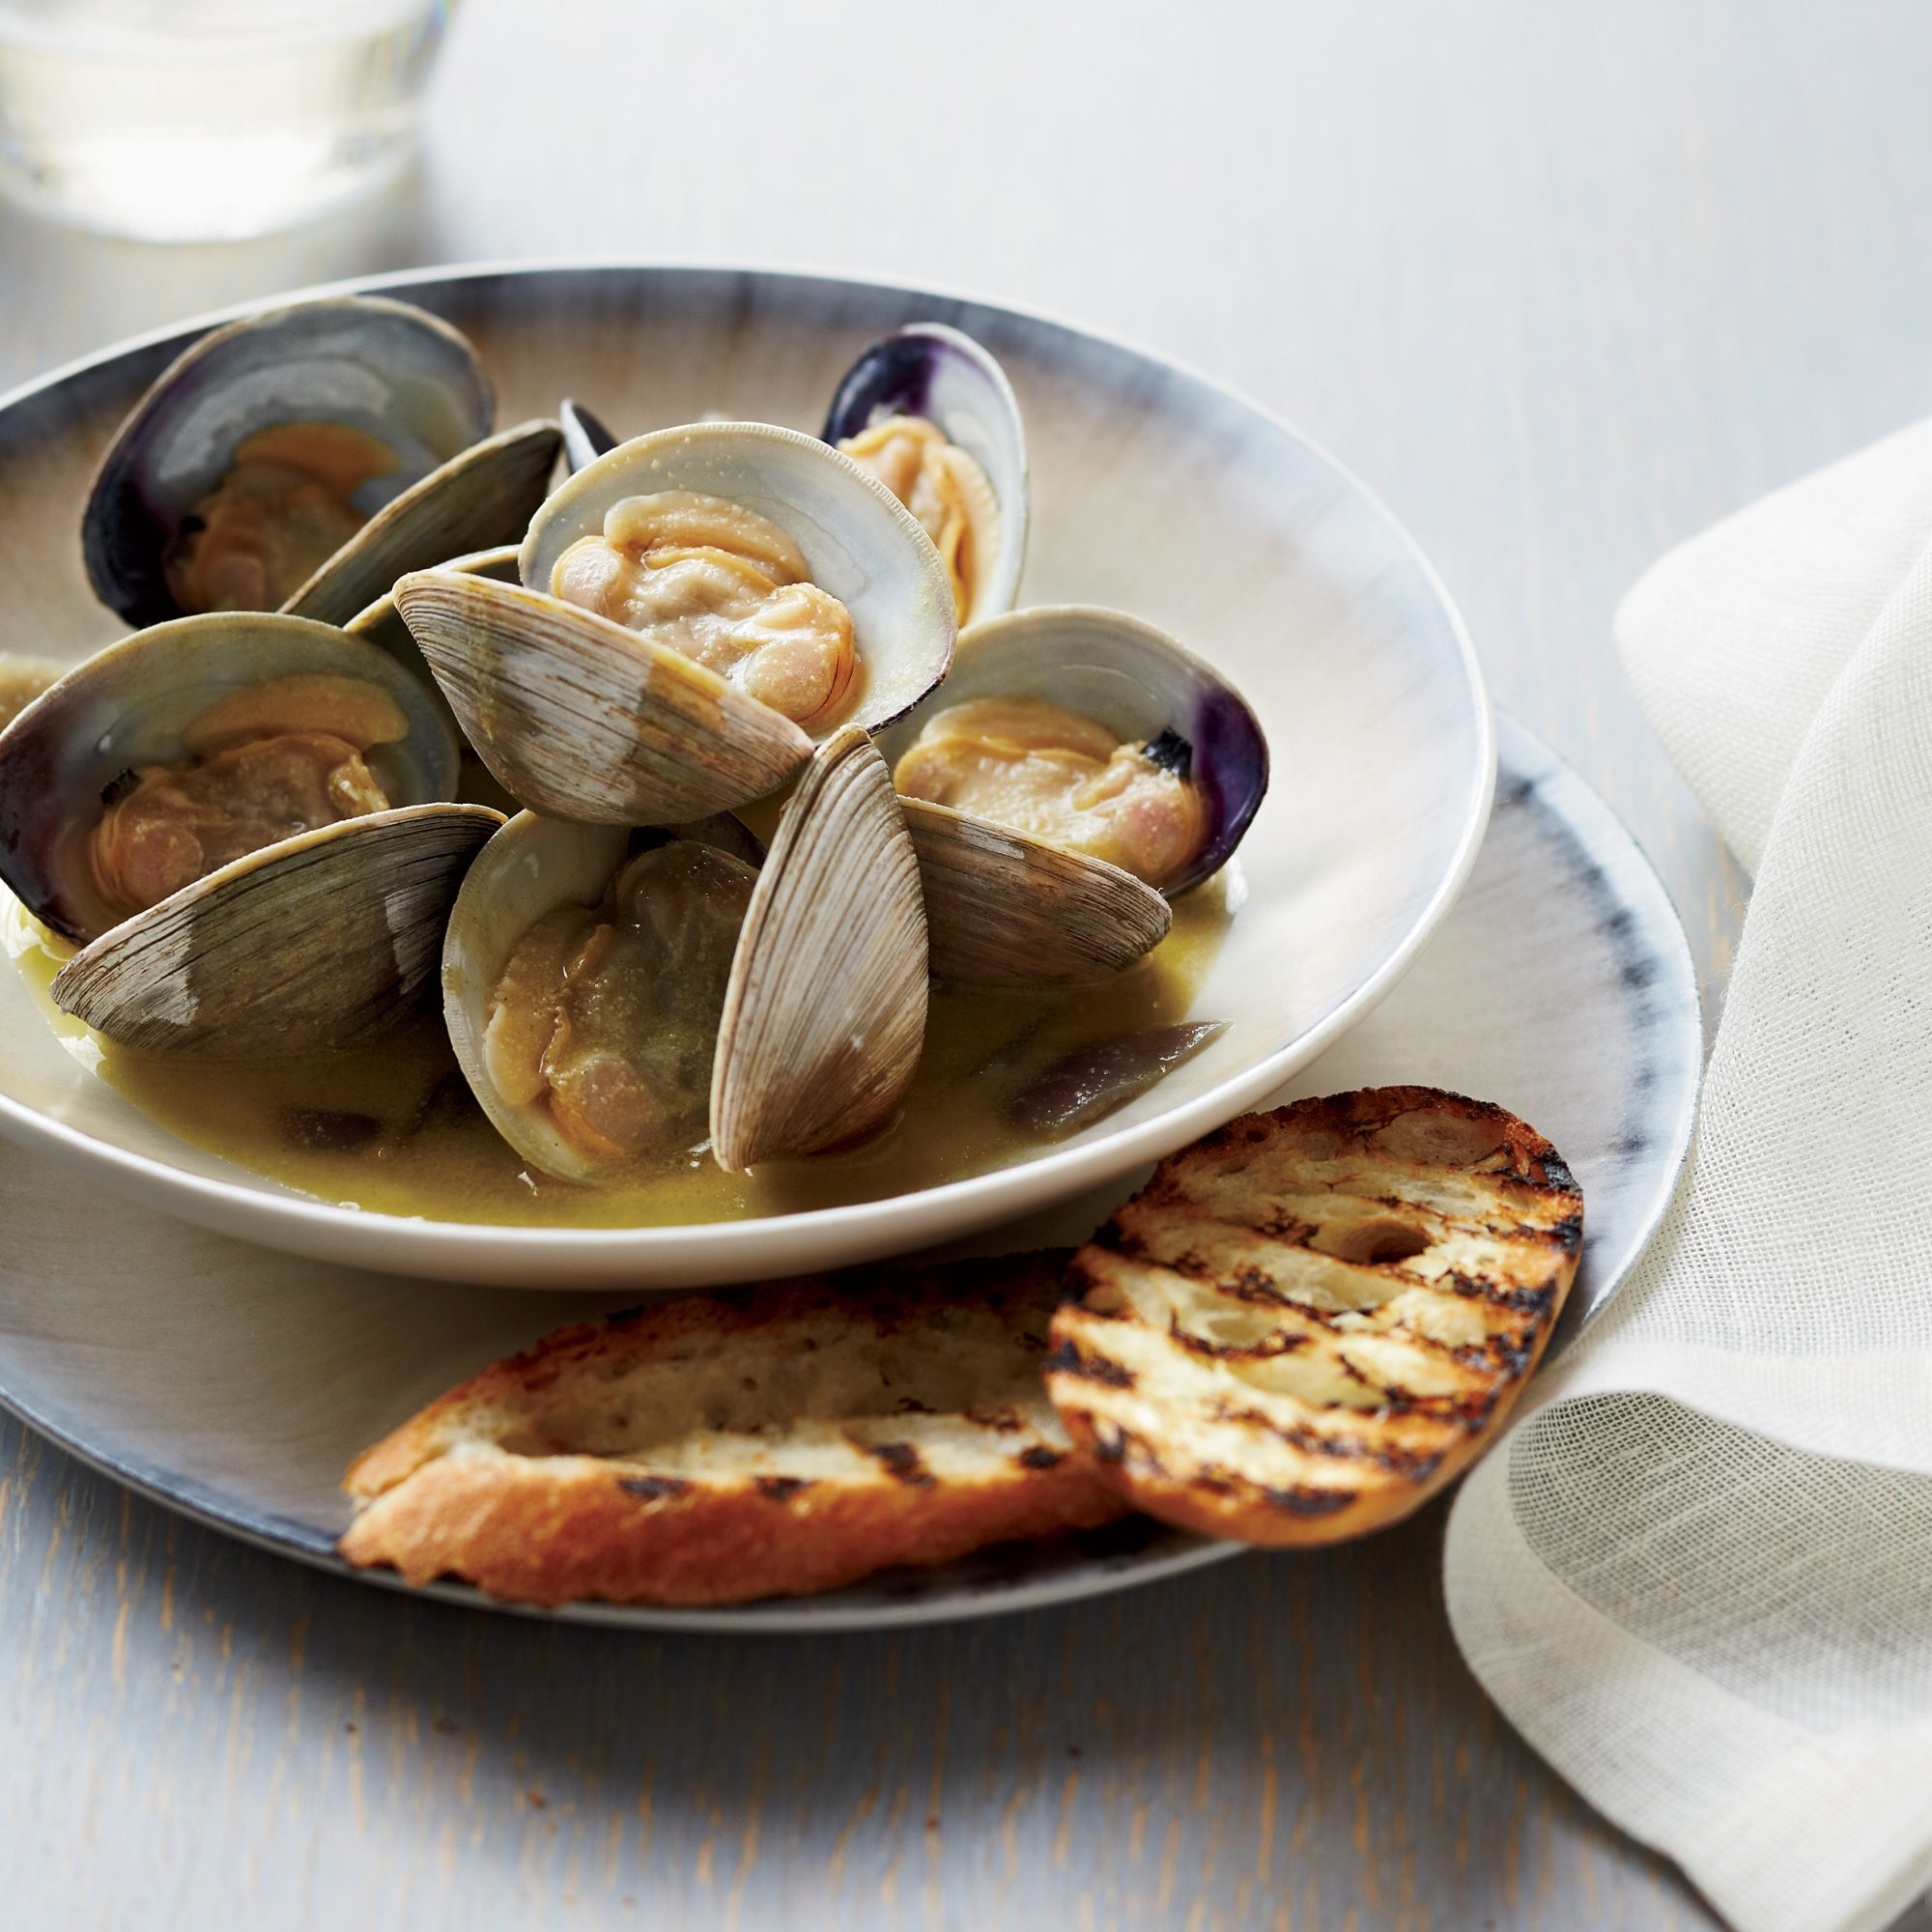 201007-r-foie-gras-clams.jpg